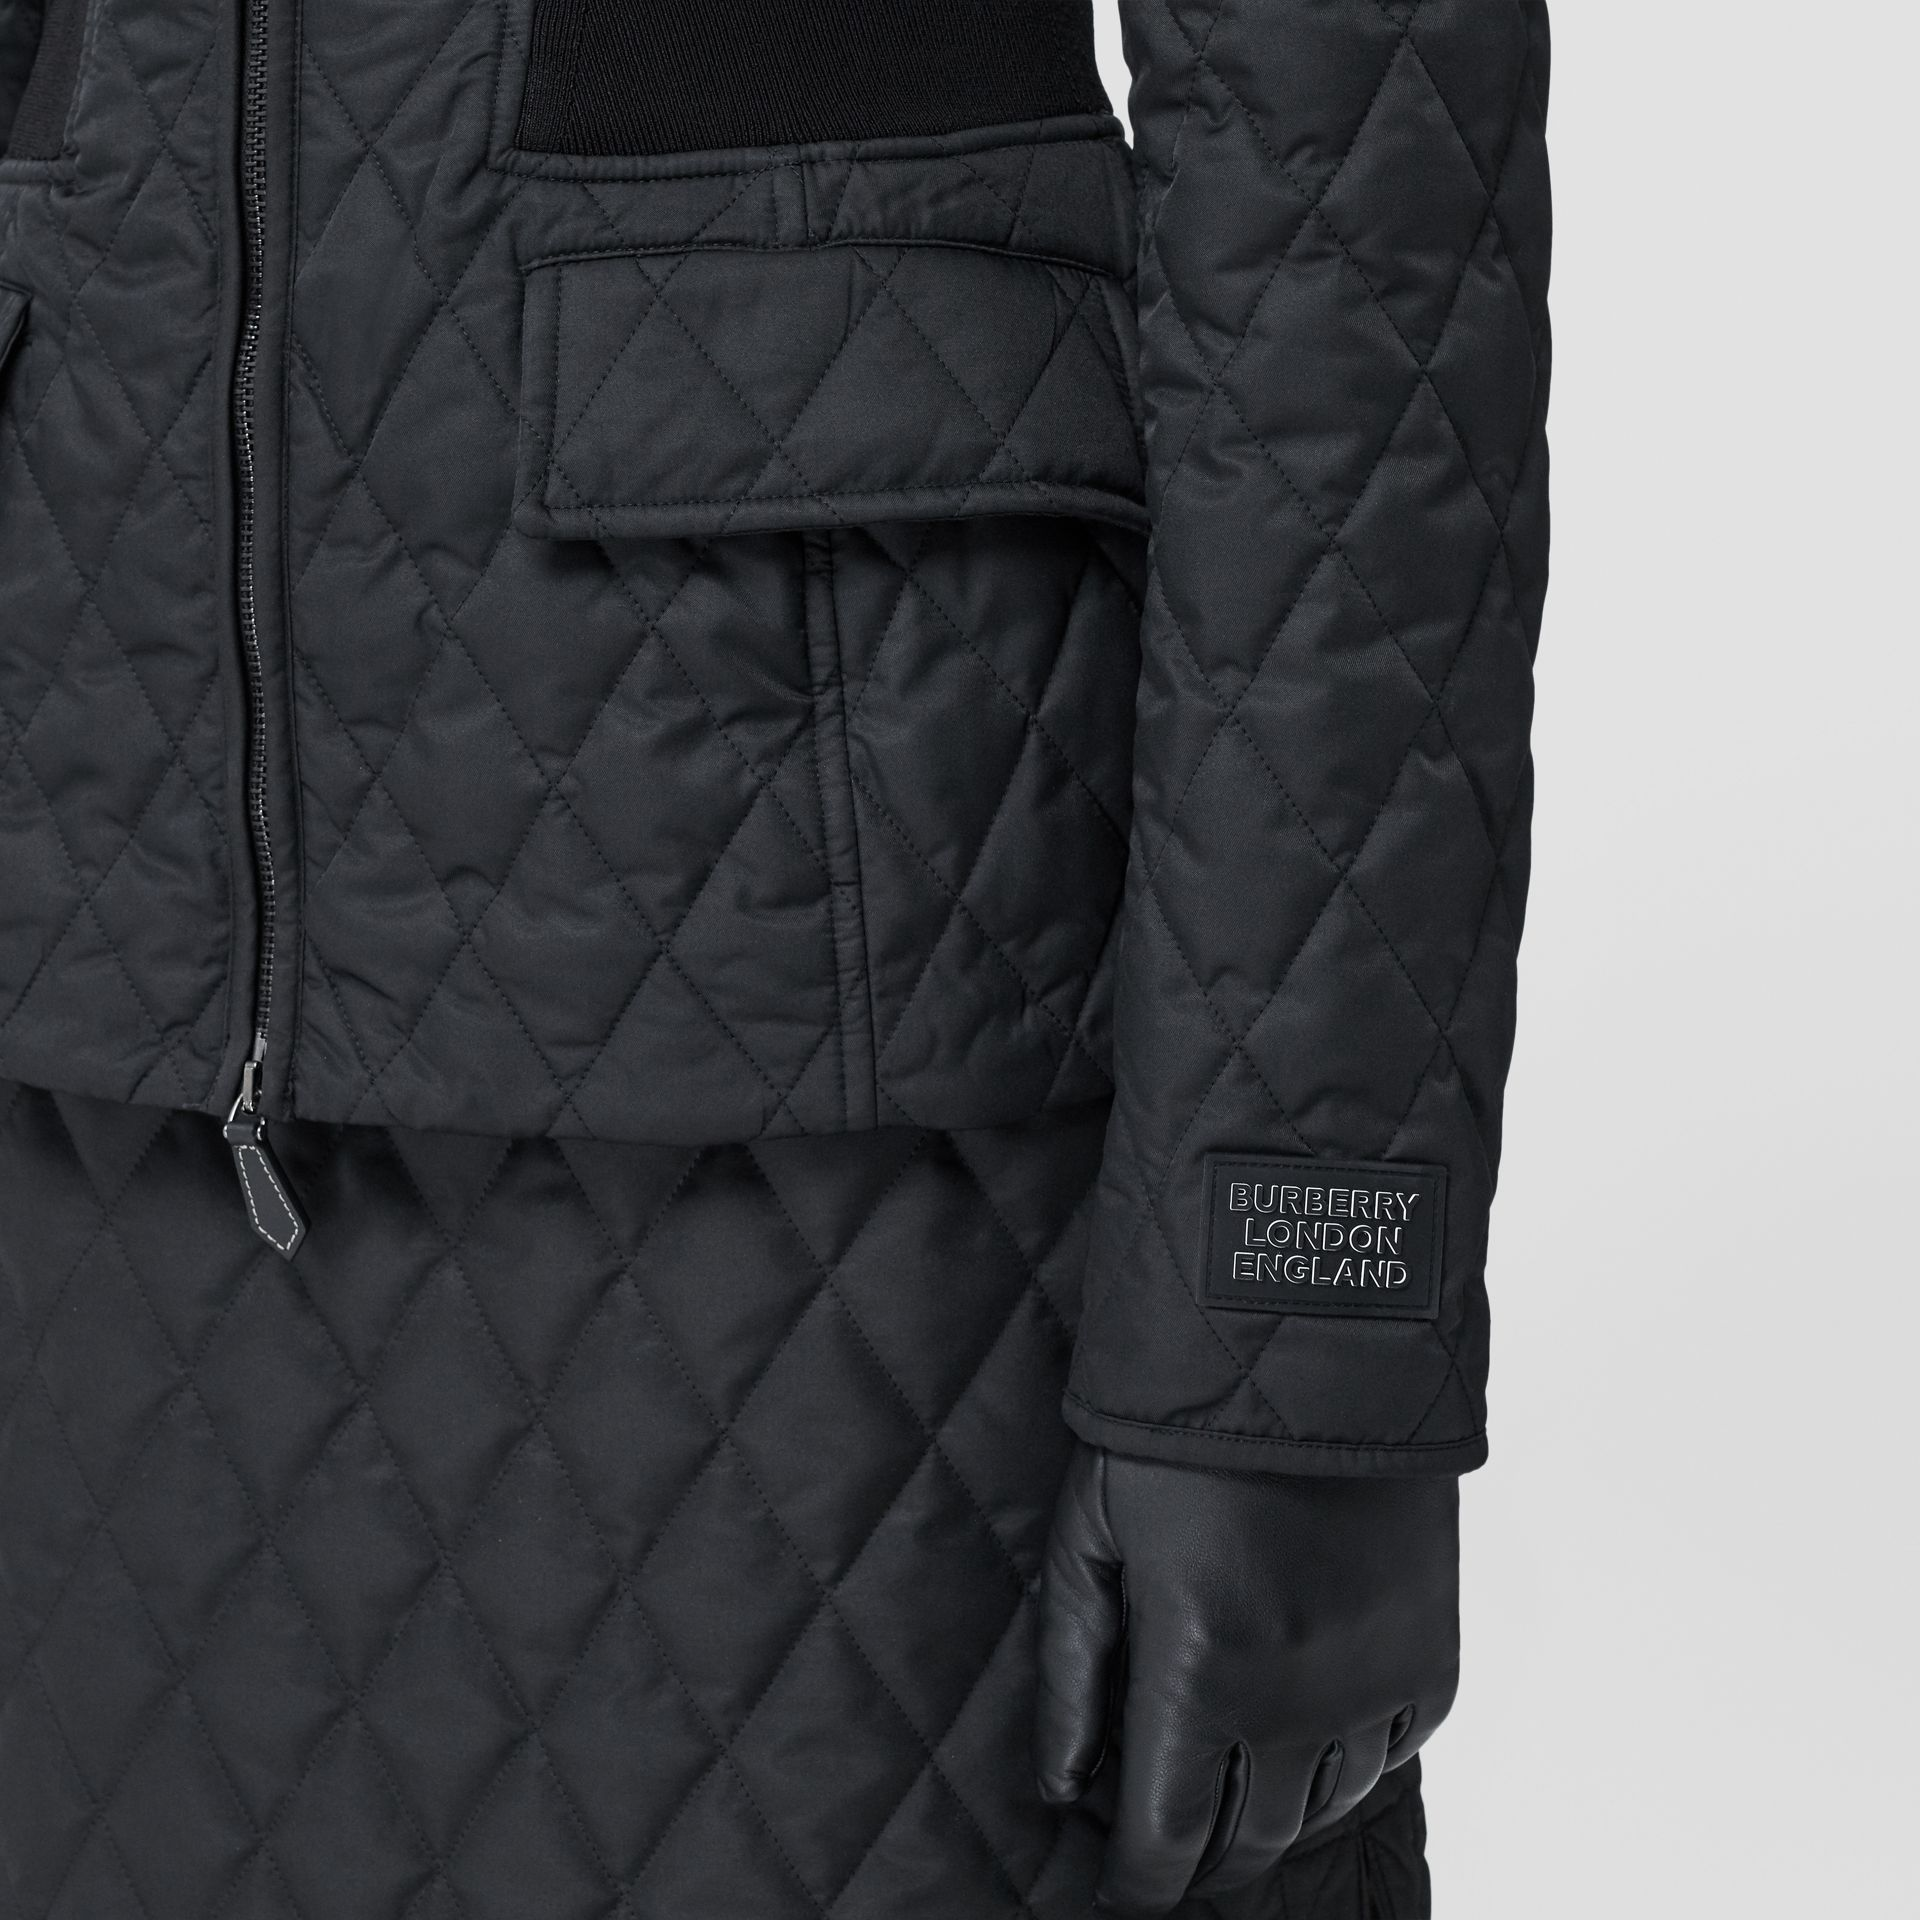 Rib Knit Panel Diamond Quilted Barn Jacket in Black - Women | Burberry United Kingdom - gallery image 4